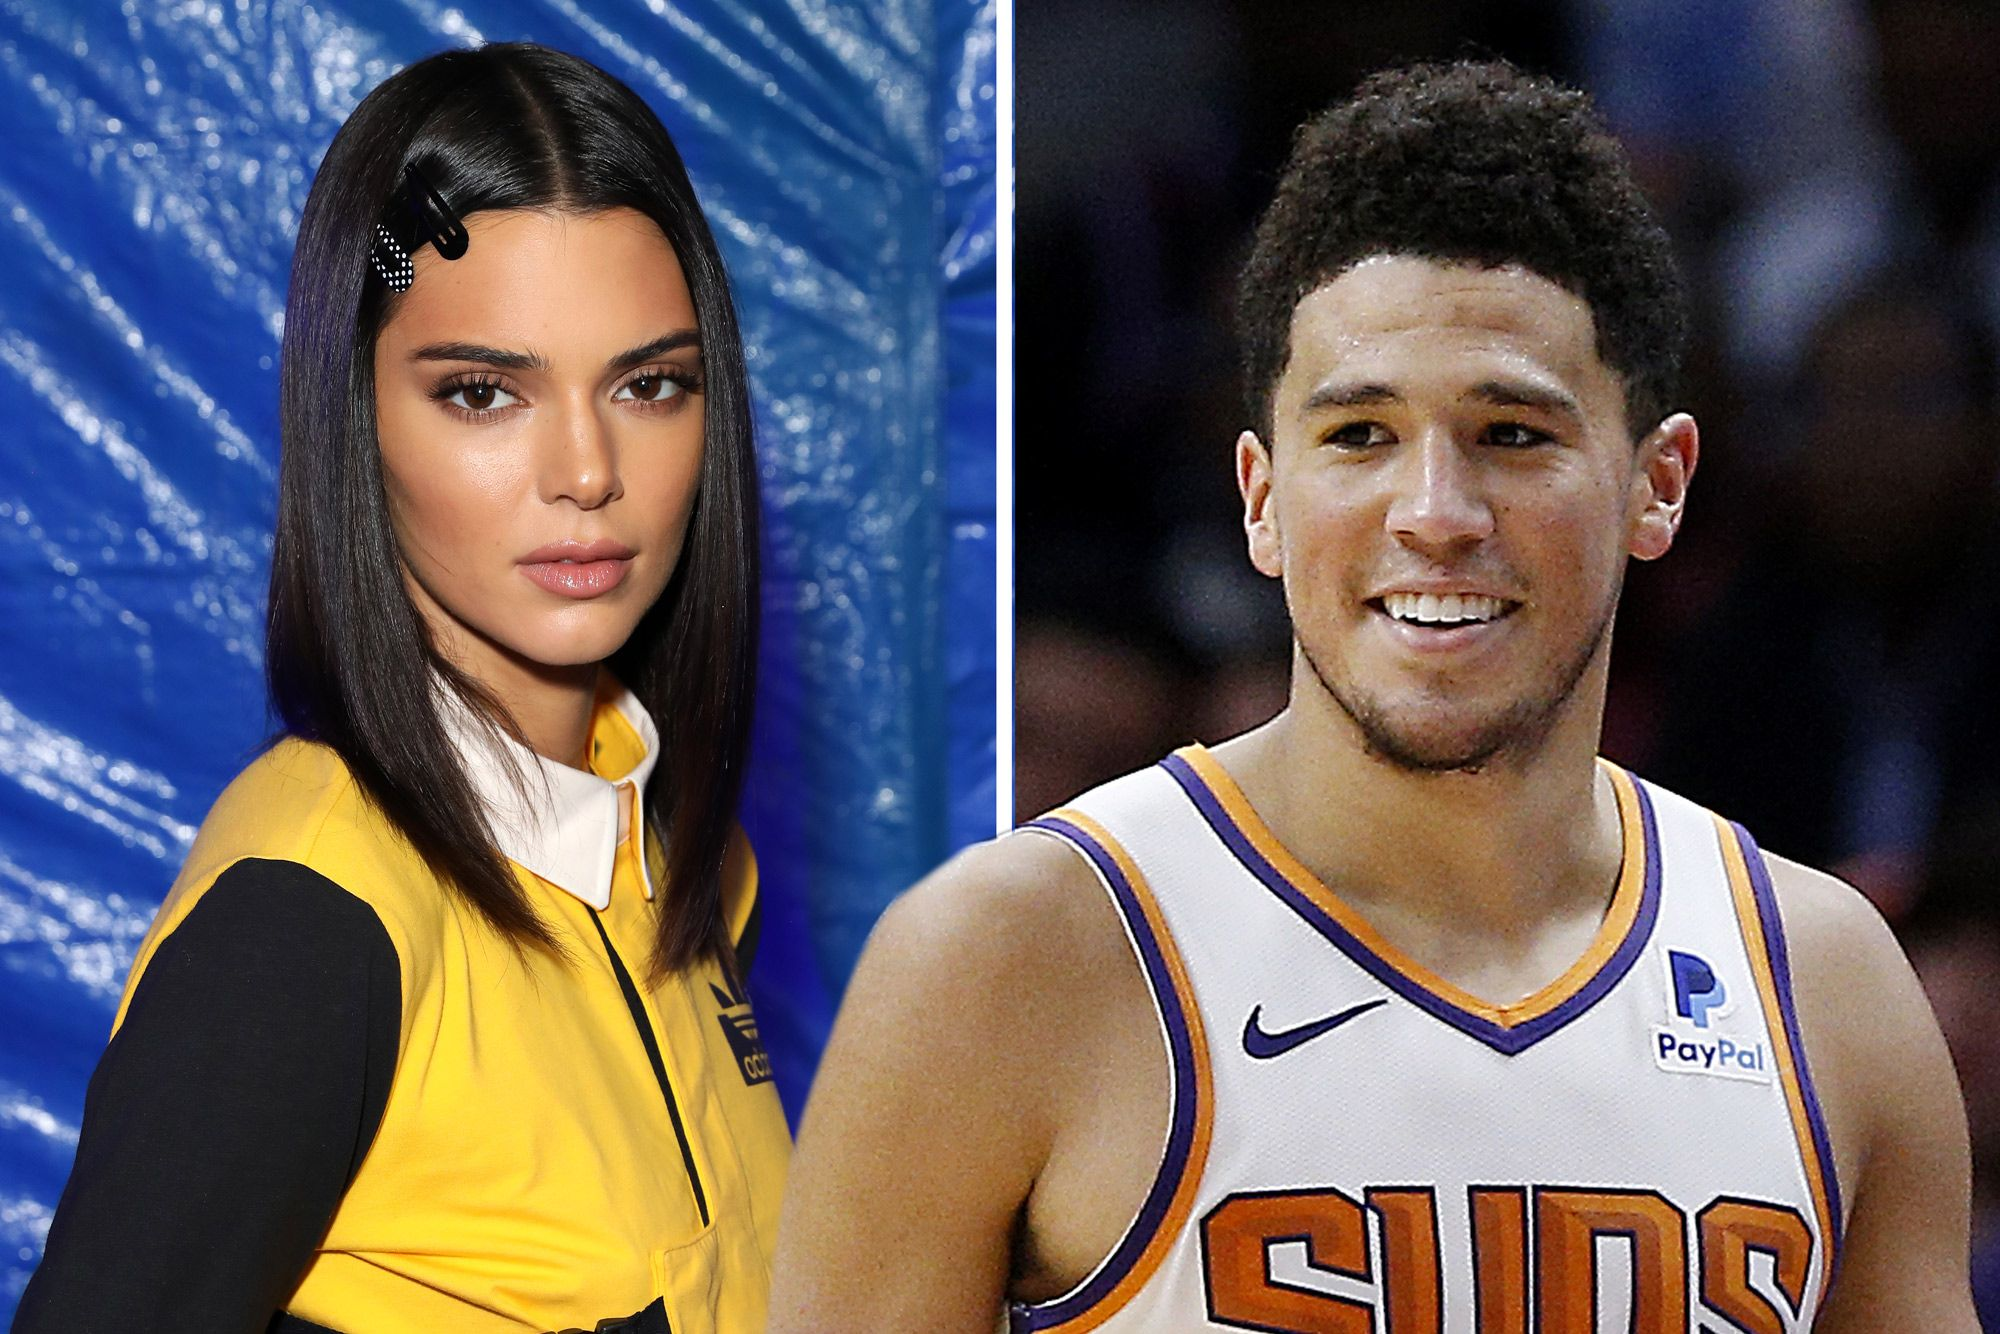 KUWTK: Kylie Jenner 'Happy' Her Sister Kendall Jenner Is Dating Devin Booker – Here's Why!